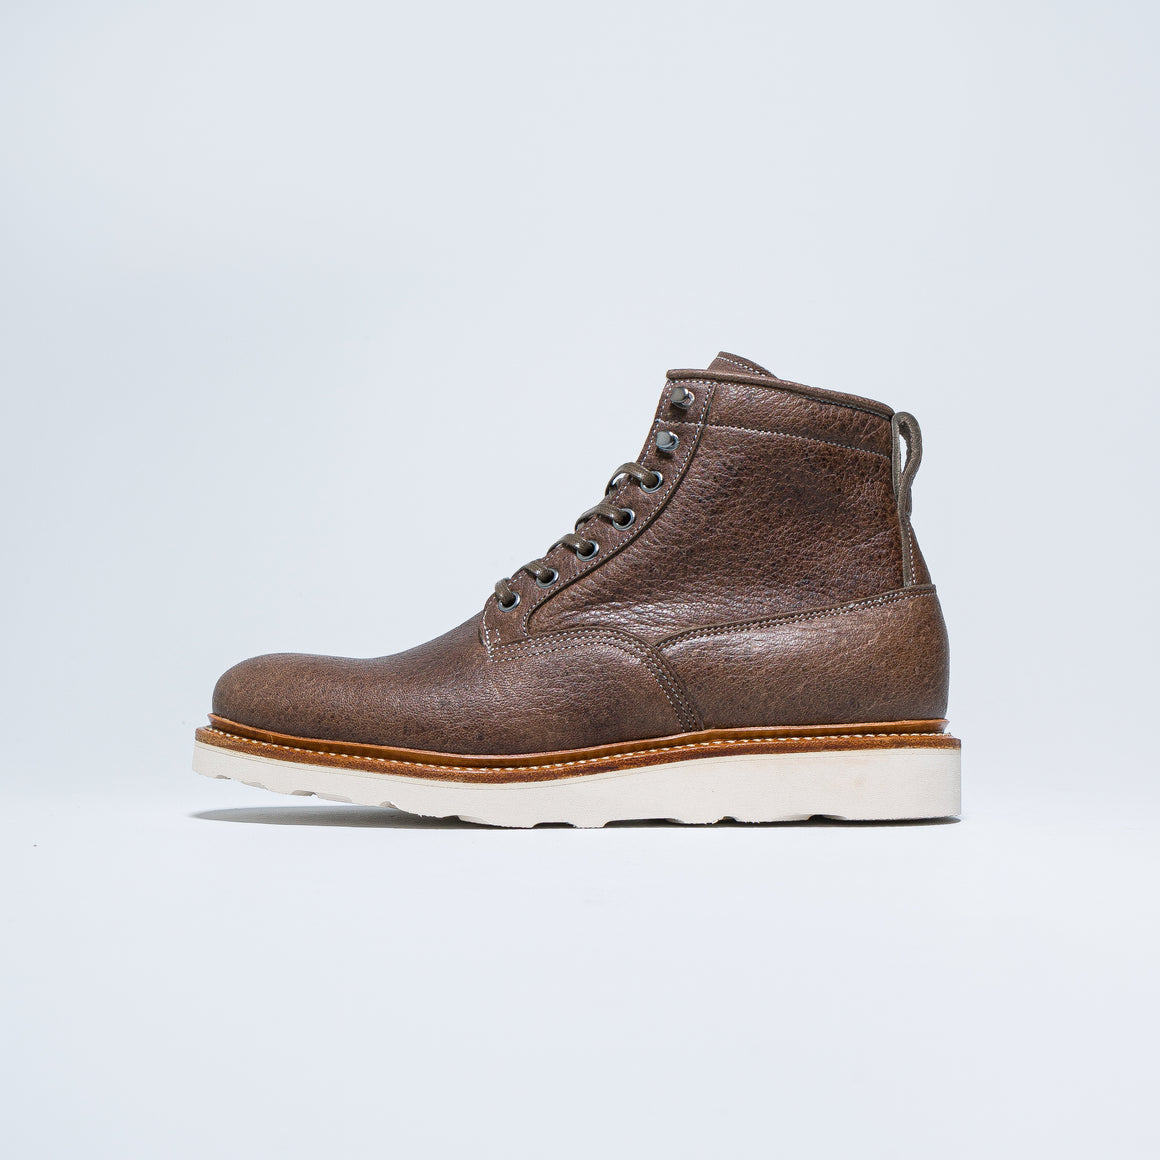 Viberg - Scout Boots - CF Stead Fog Waxed Veldt - Up There